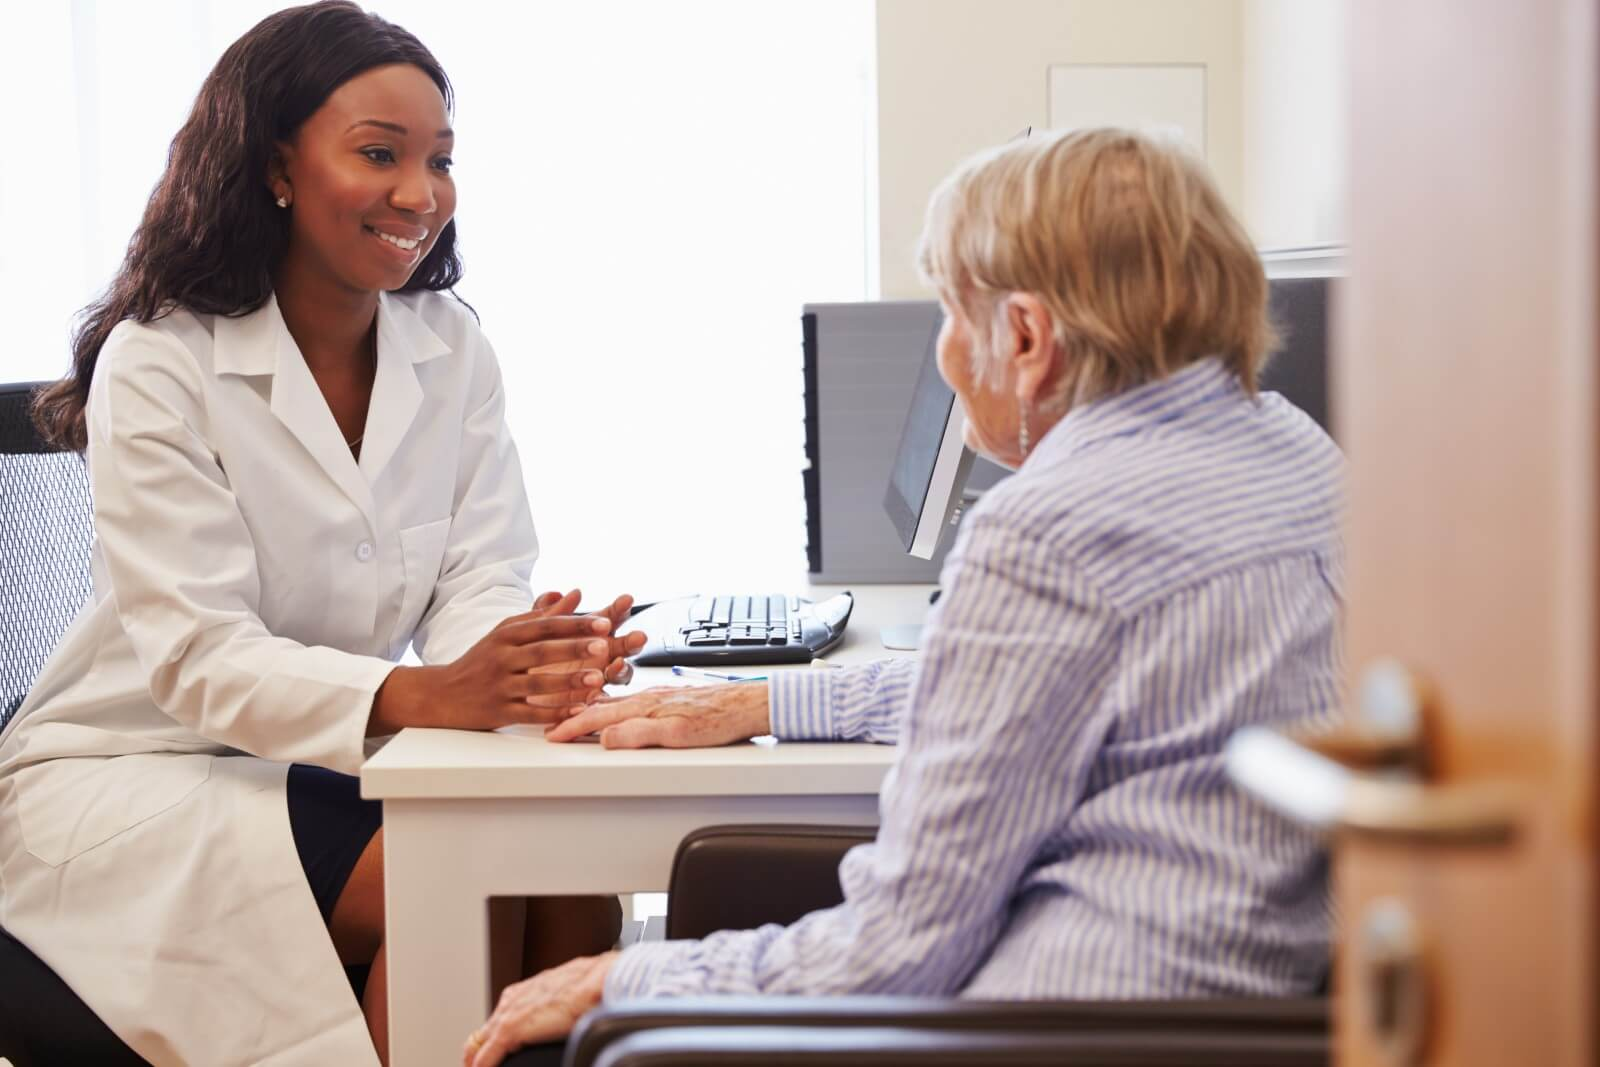 14 Medical Marketing Solutions for Getting New Patients